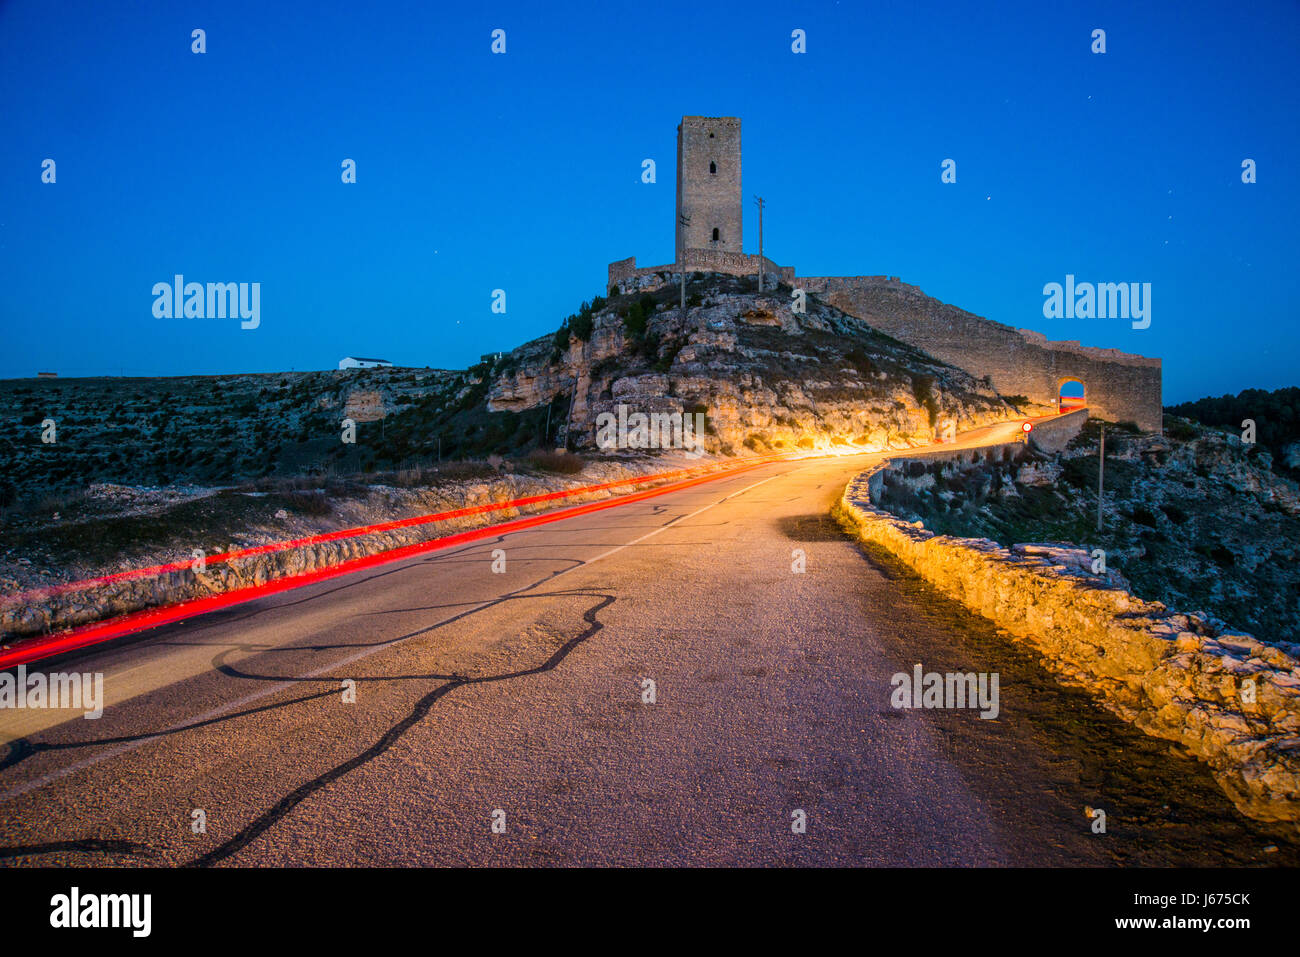 Medieval tower and light trail, night view. Alarcon, Cuenca province, Castilla La Mancha, Spain. - Stock Image